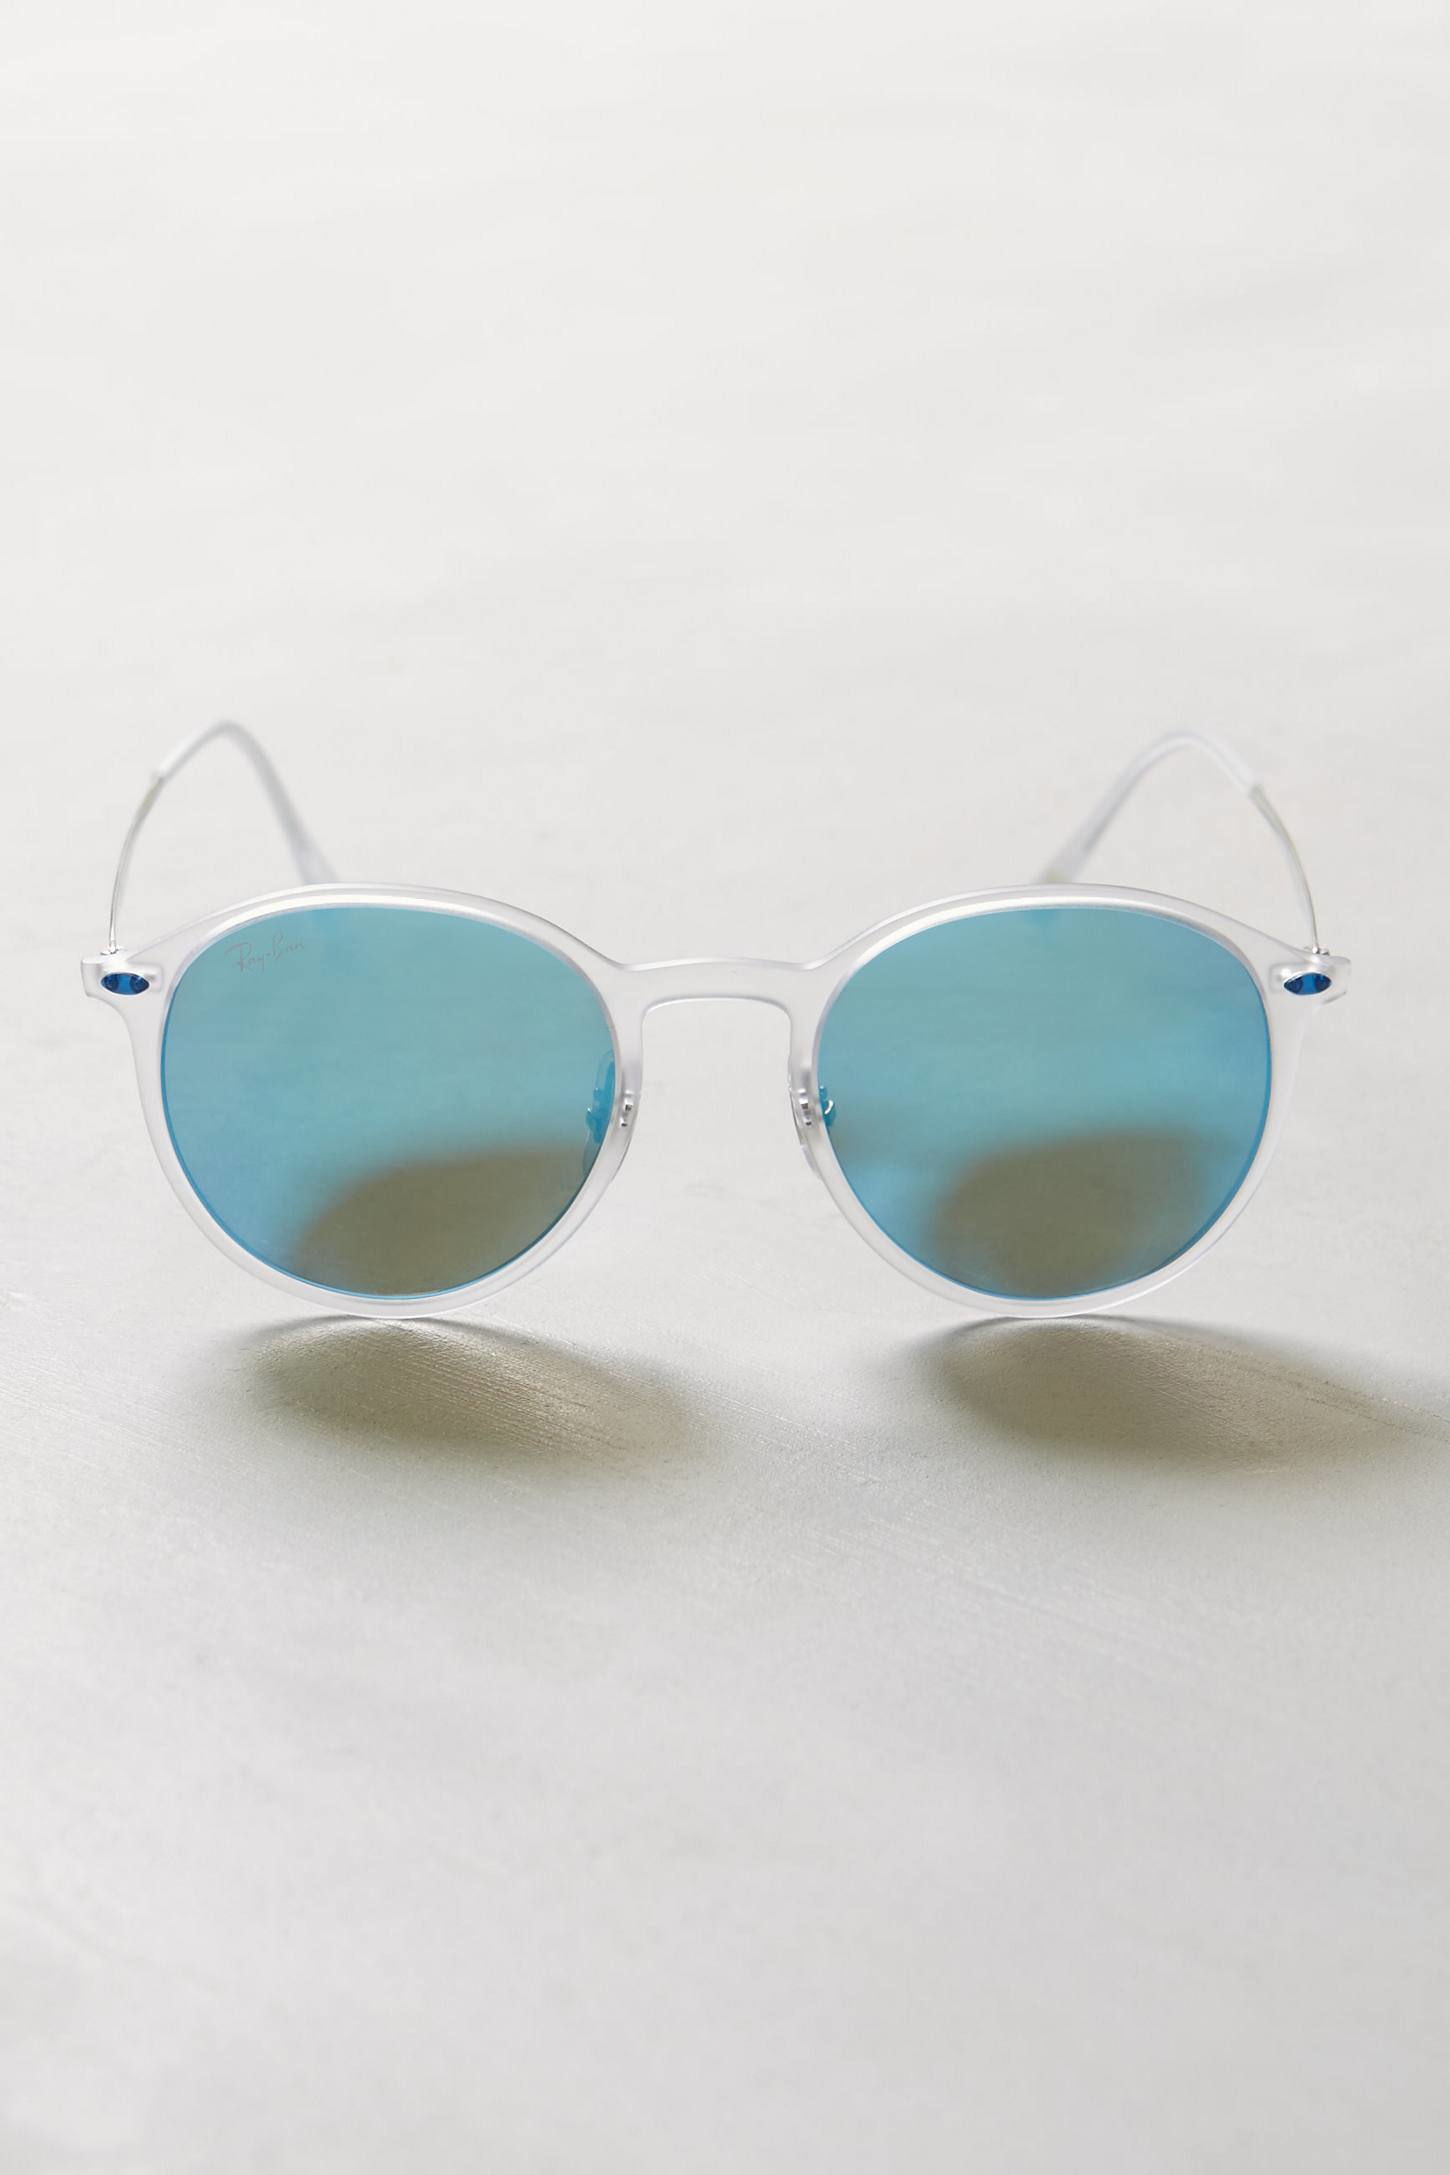 Ray-ban Lightray Round Sunglasses in White